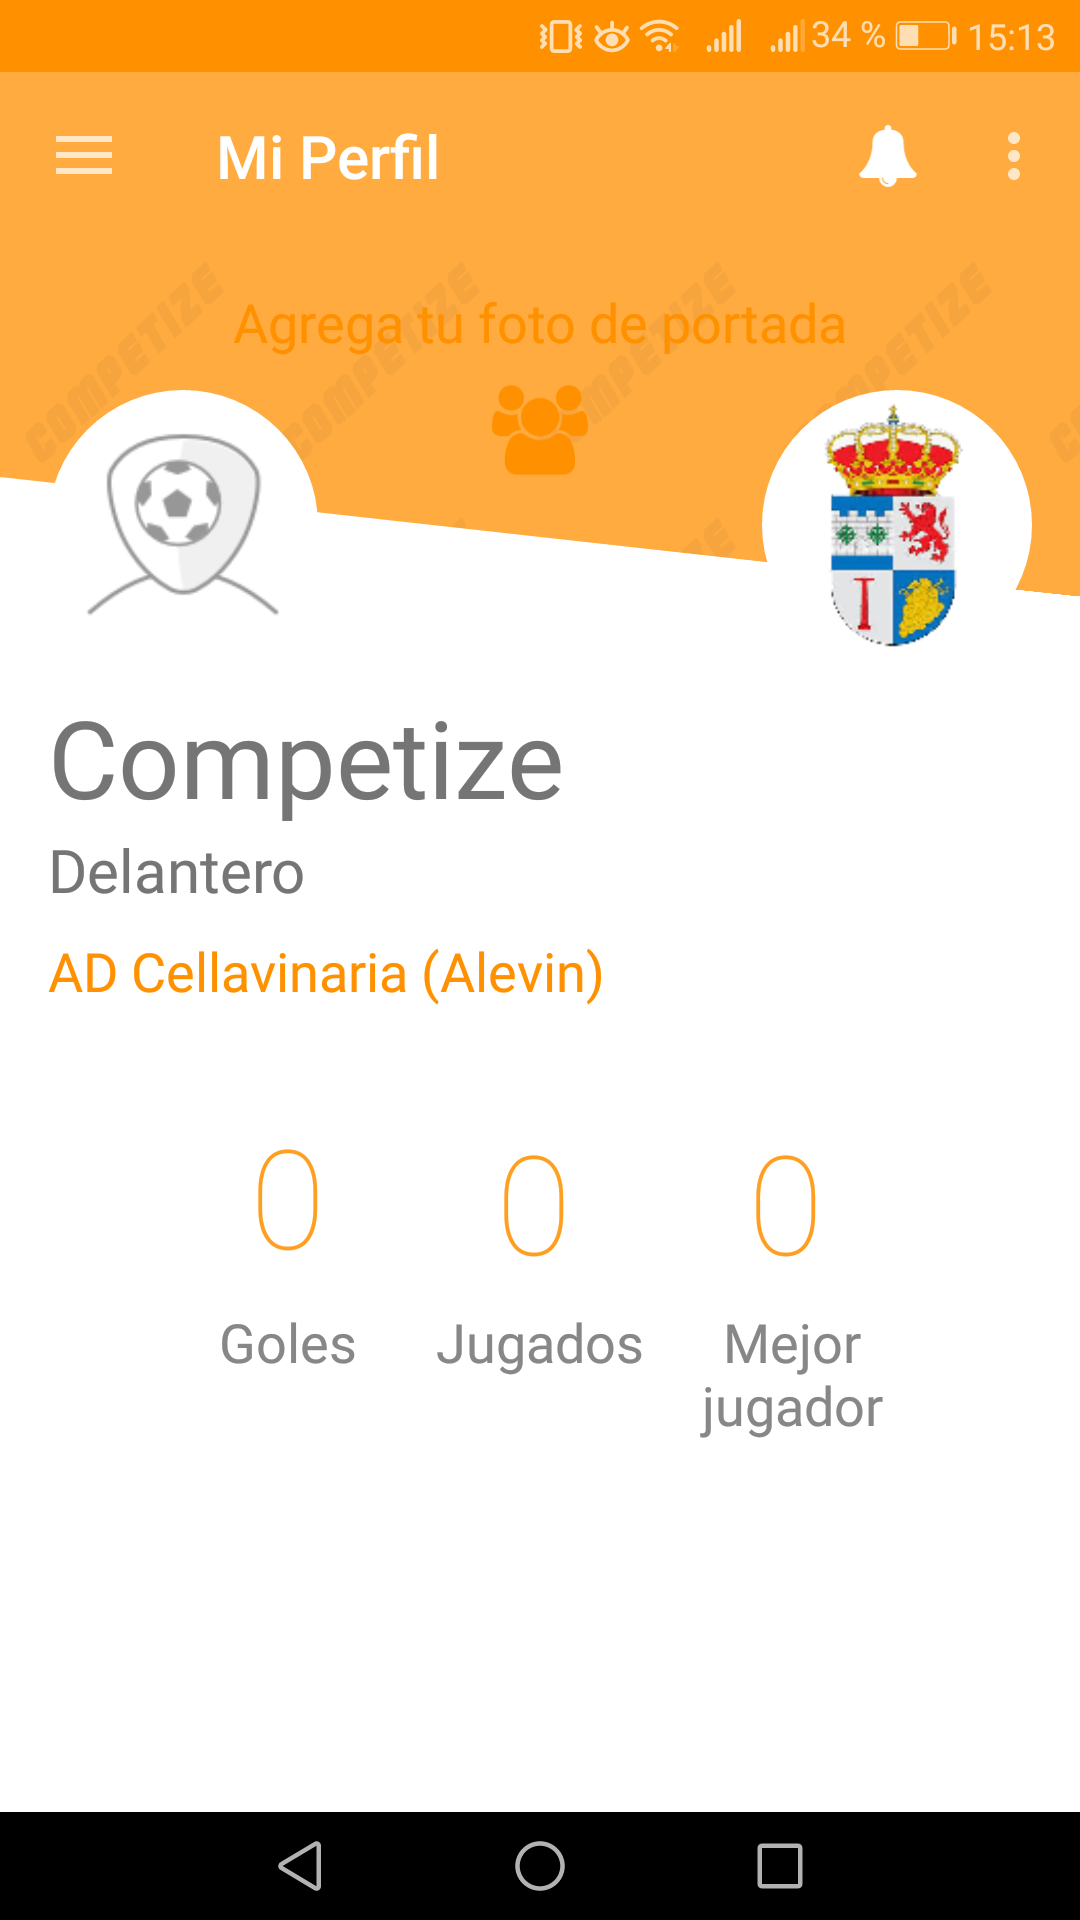 View statistics from app for players